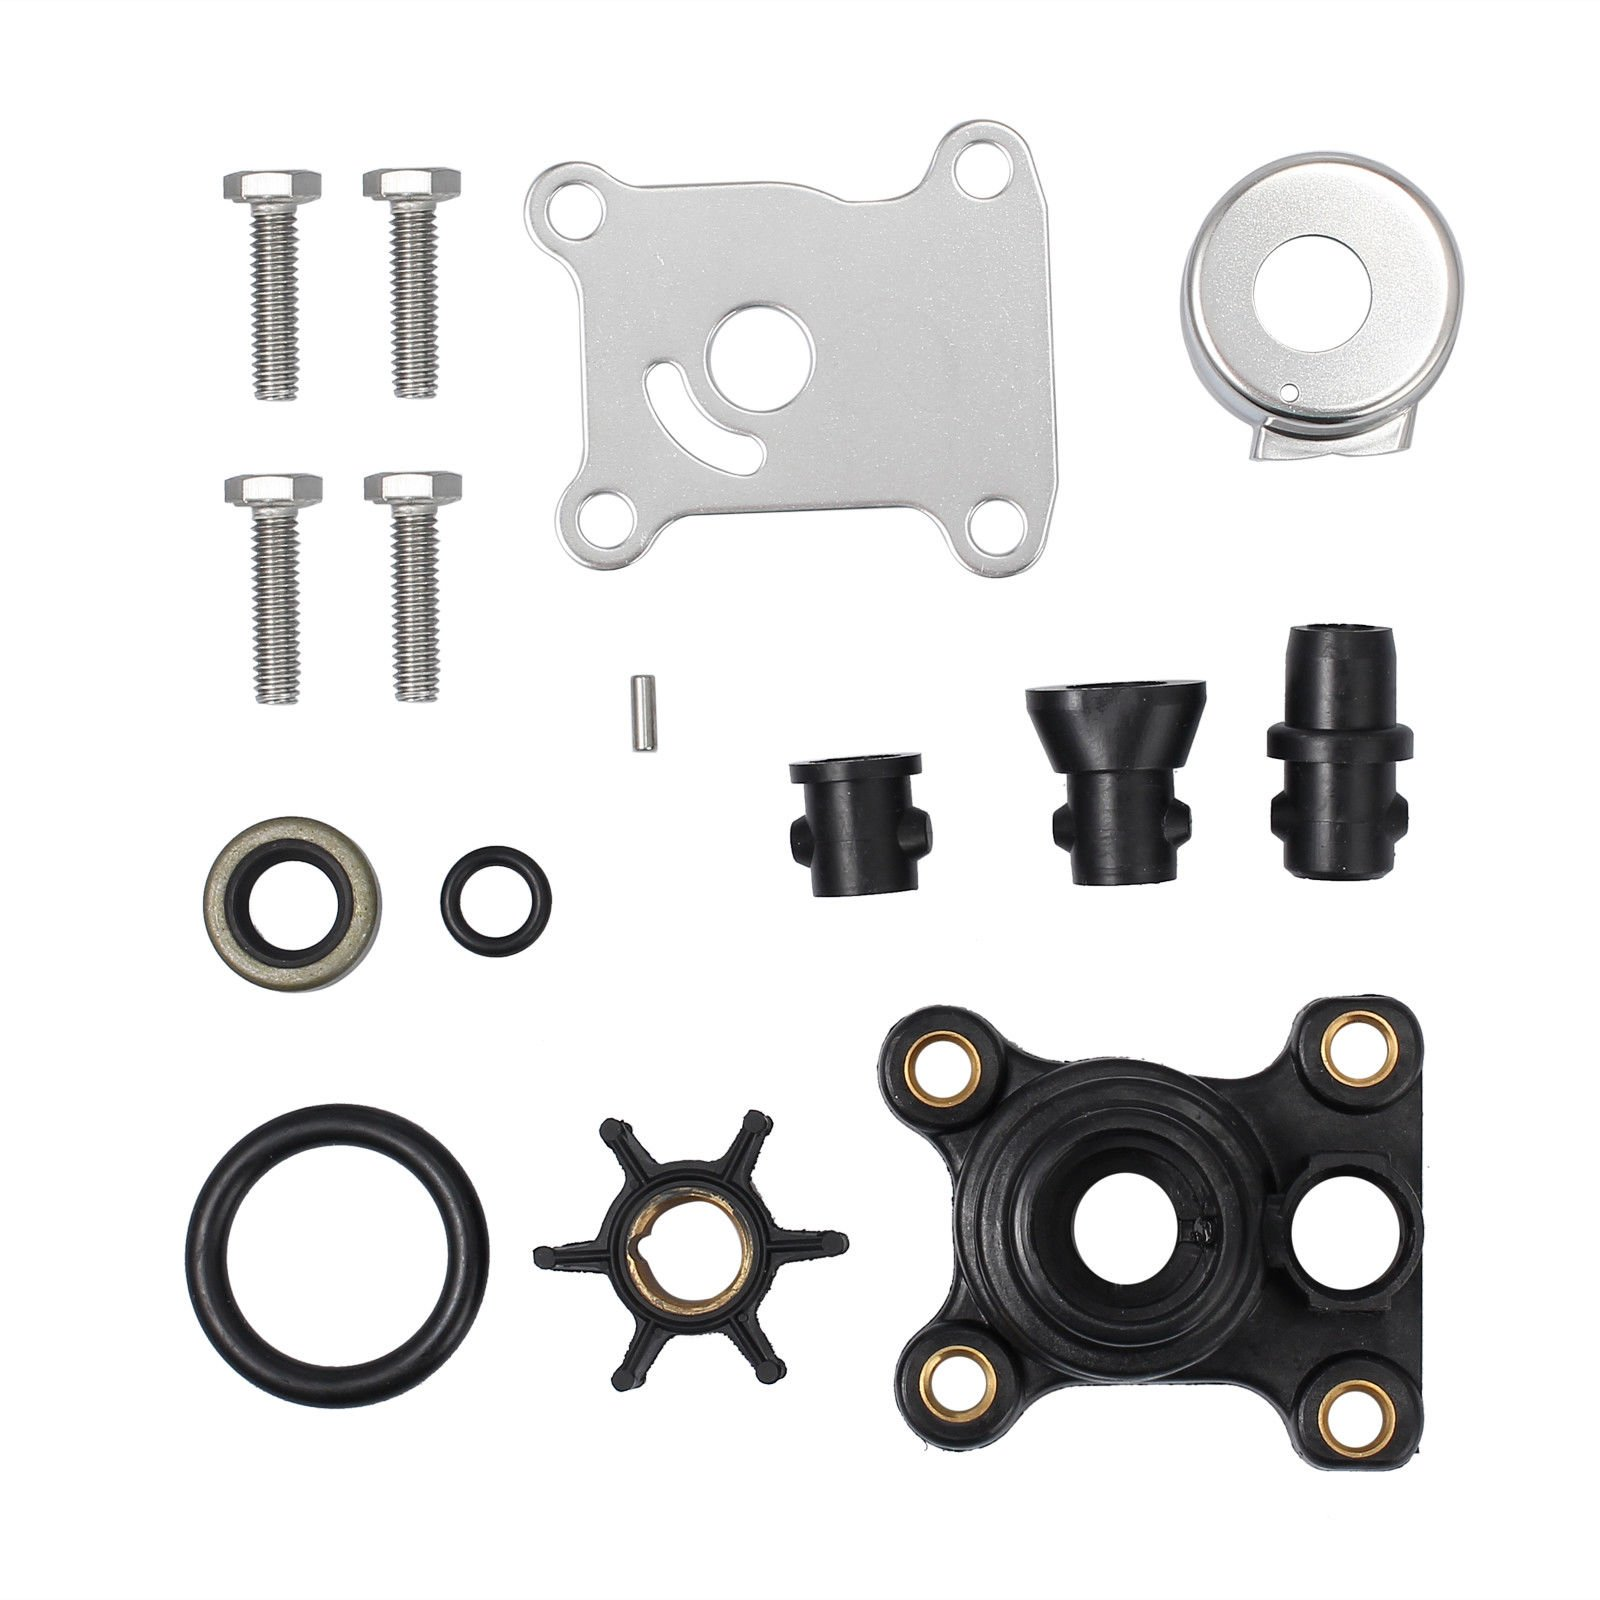 AUTOUTLET Impeller Water Pump Repair Kit Replaces for OEM 394711, 9.9hp/5hp Johnson/Evinrude 2 Stroke 1974 & Later, Johnson/Evinrude 4-Stroke 1995 & Later